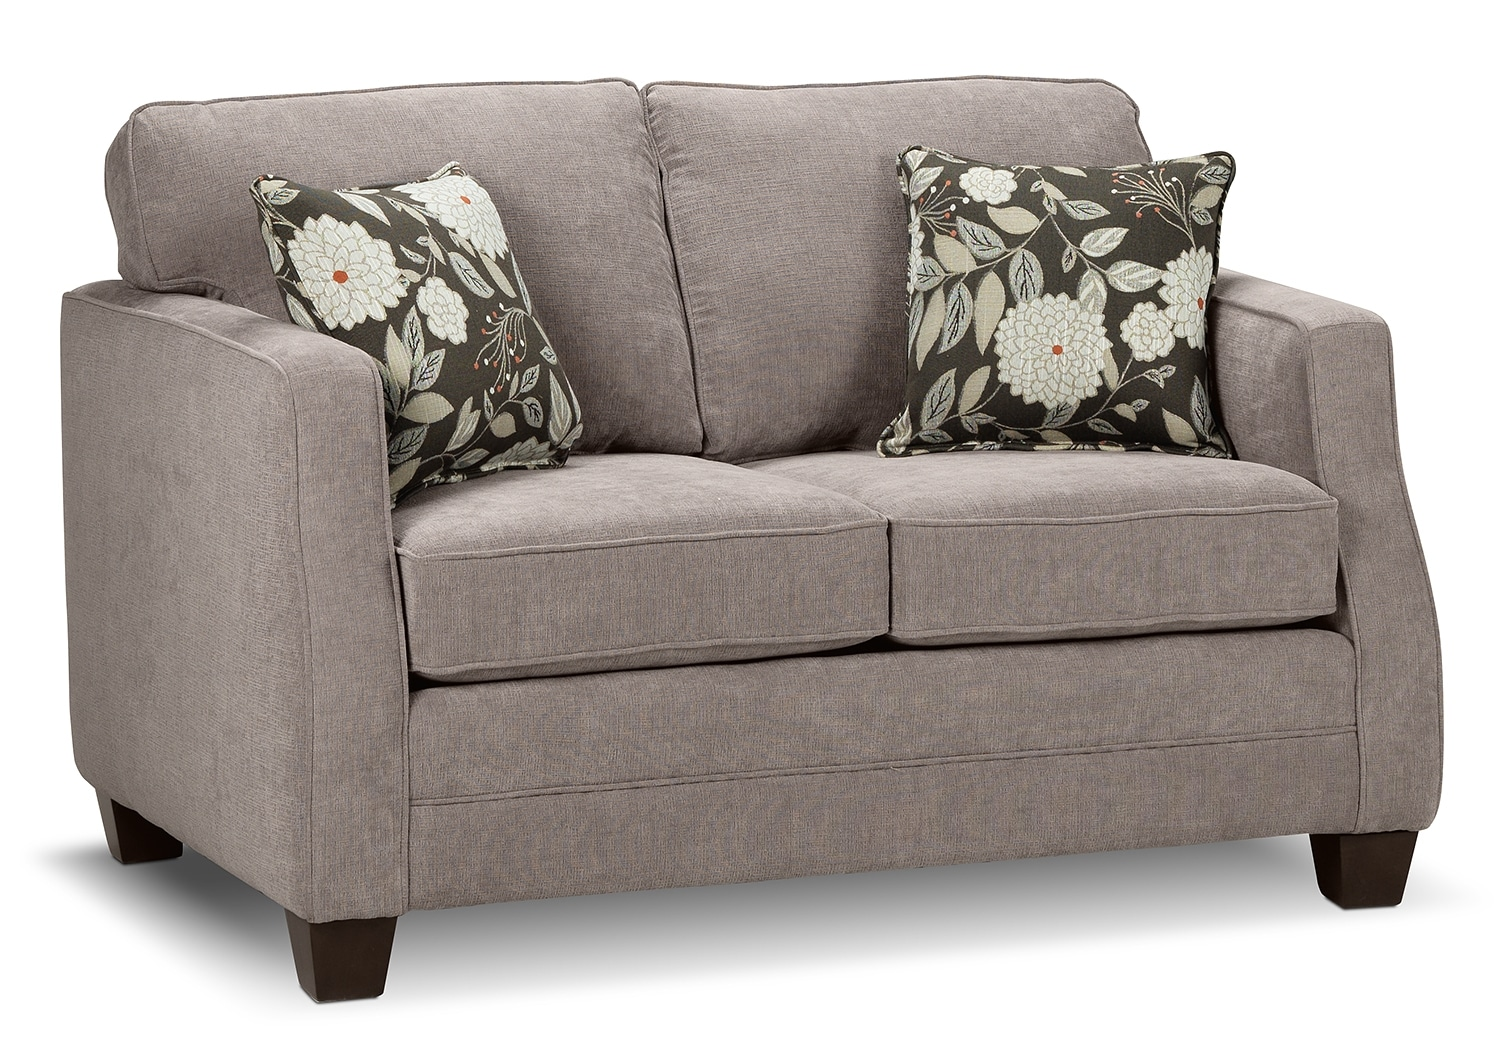 Living Room Furniture - Agnes Loveseat - Taupe